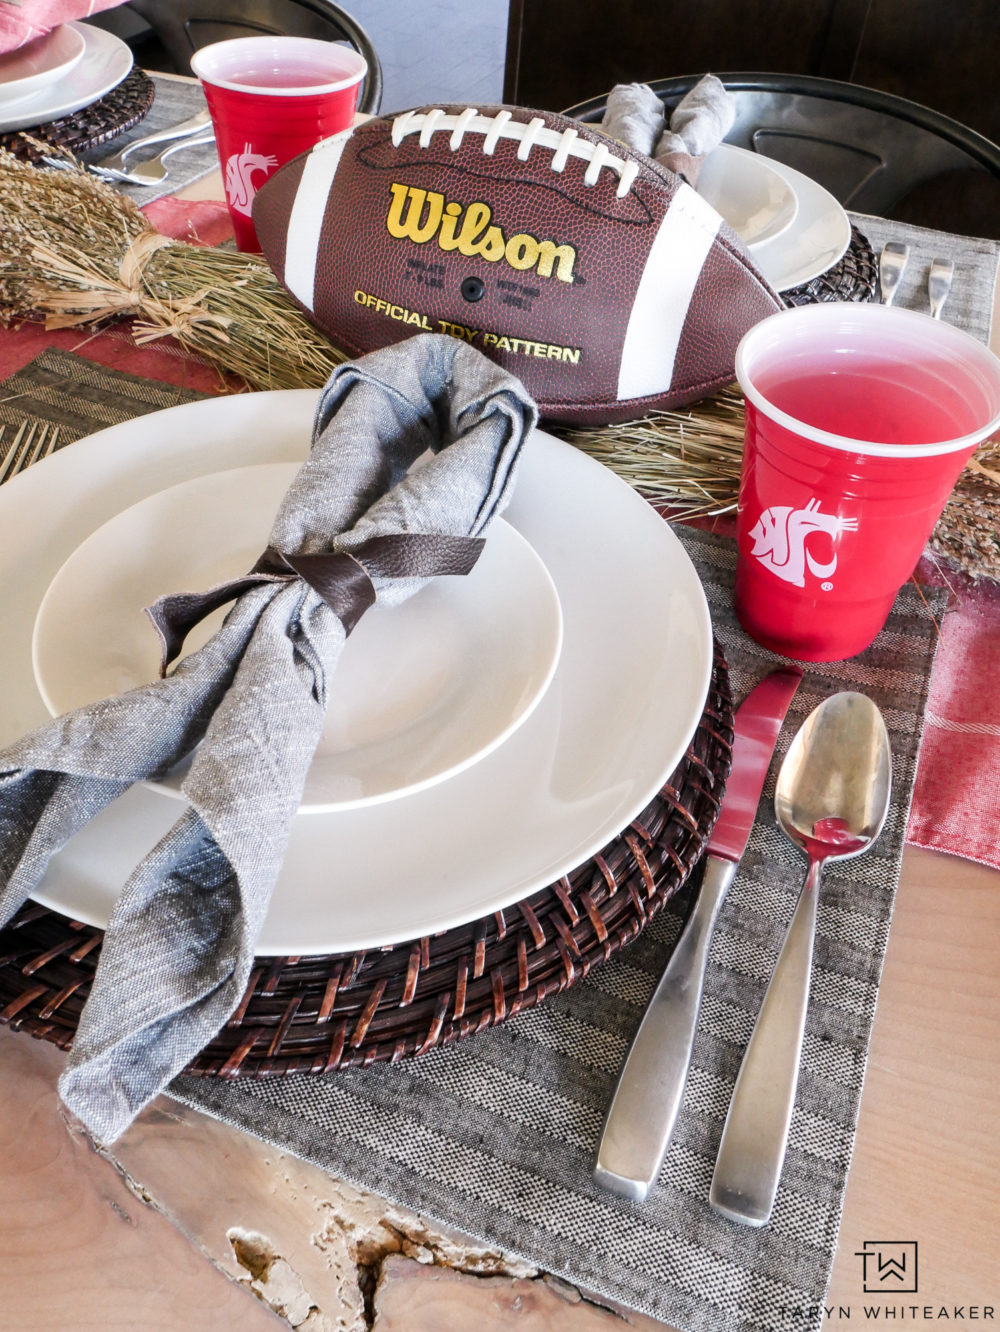 Gear up for football season with this fun football themed tablescape! Your guests will love the casual yet classy football decor to cheer on your team!